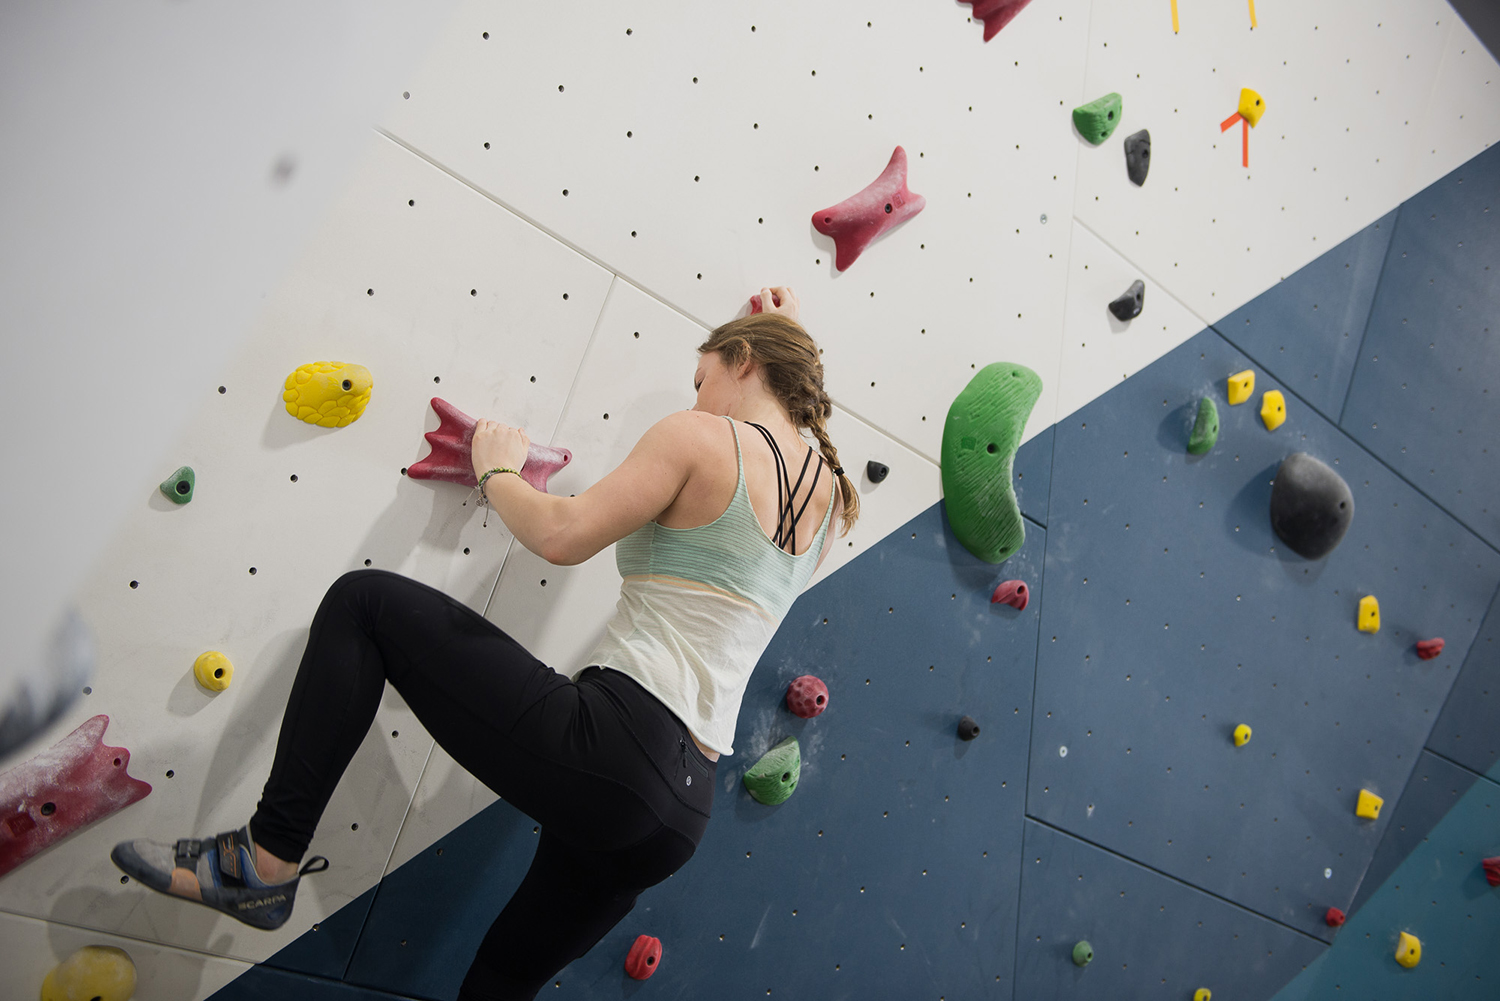 Rock climbing in brampton